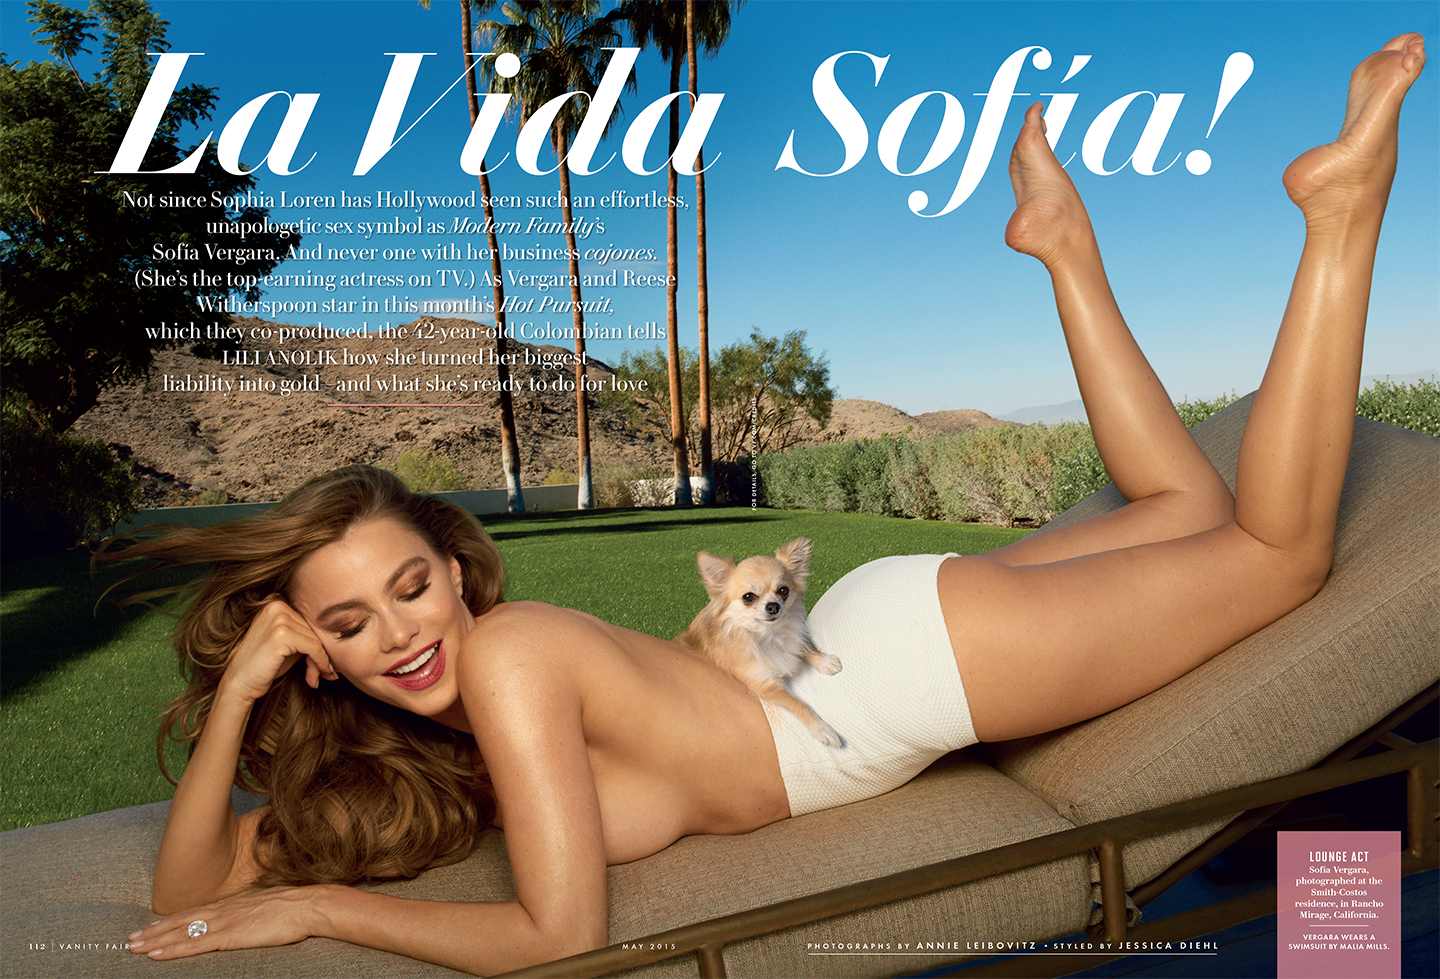 Sofia Vergara bares cleavage for Vanity Fair May 2015